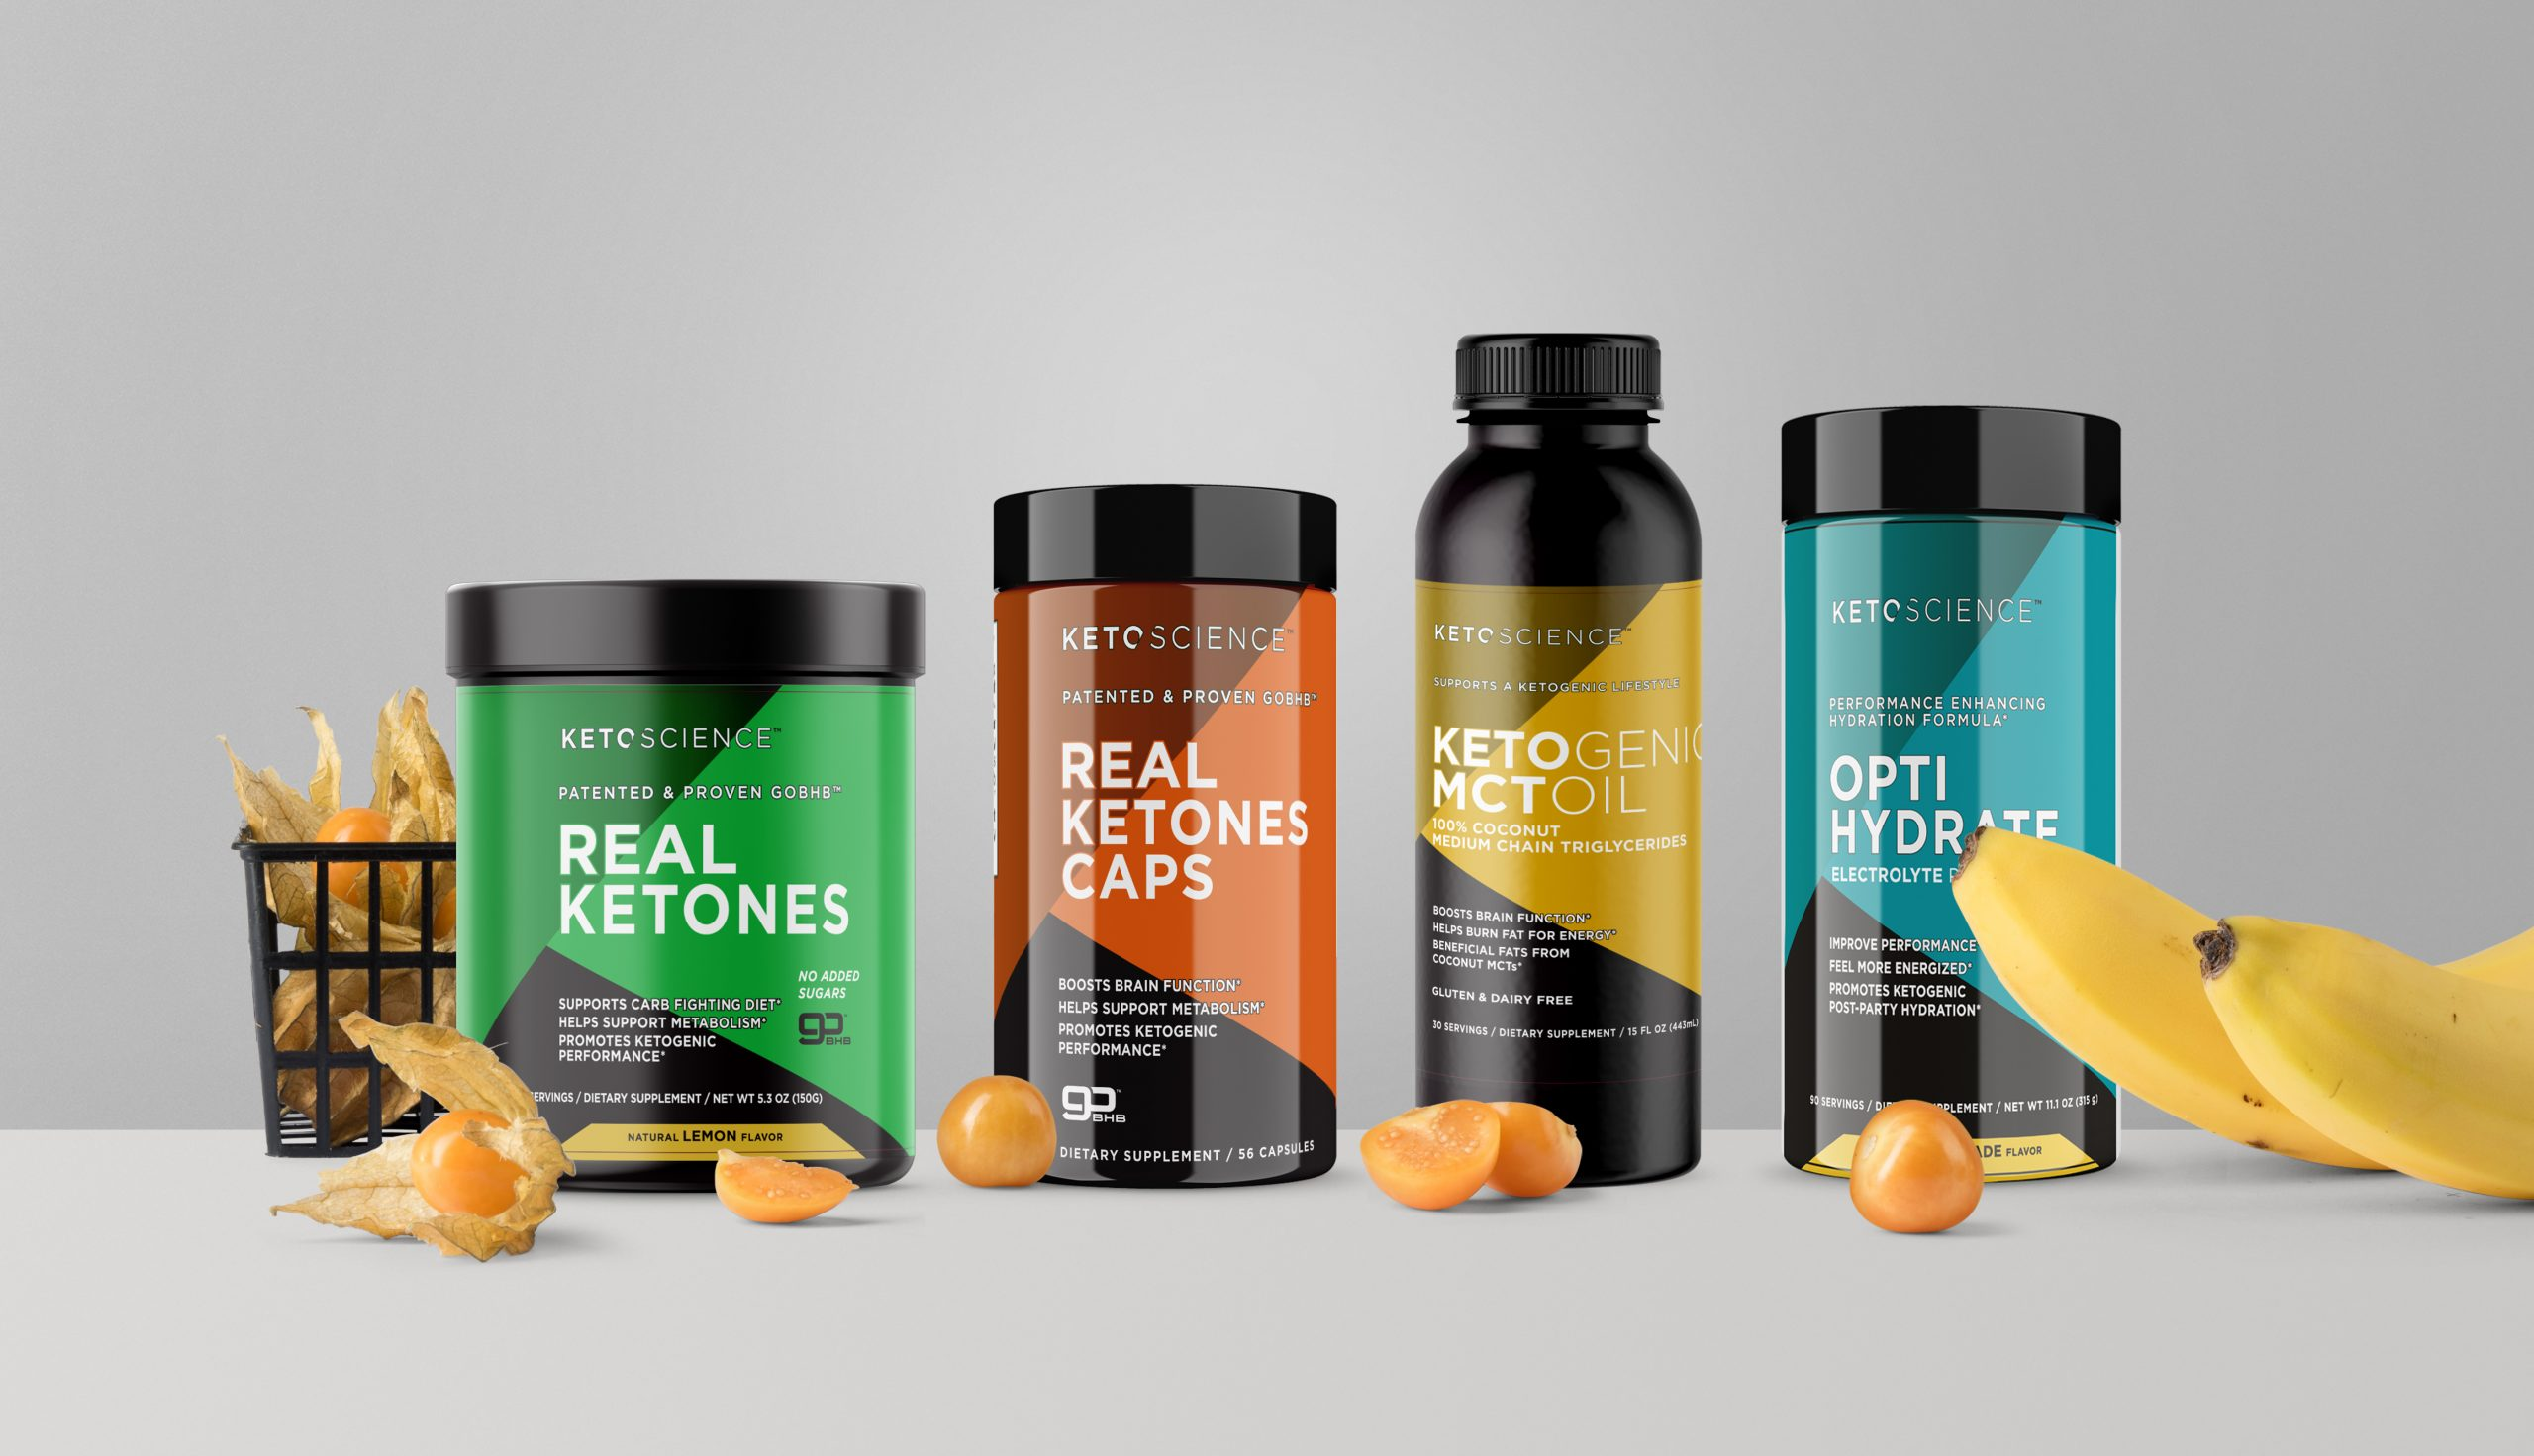 Keto Science image for the website highlighting four product offerings.